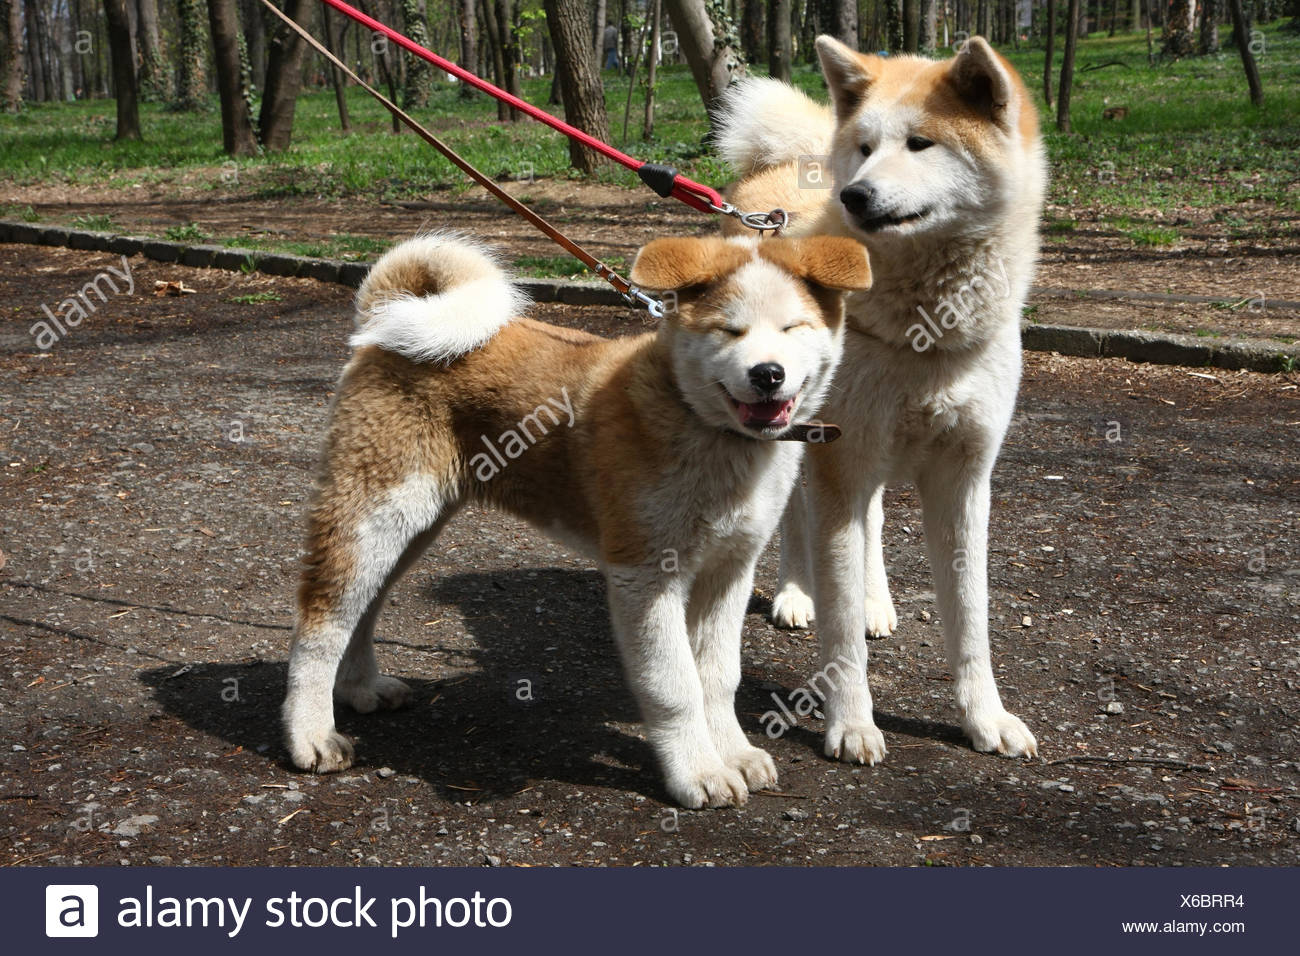 Dogs in public park - Stock Image